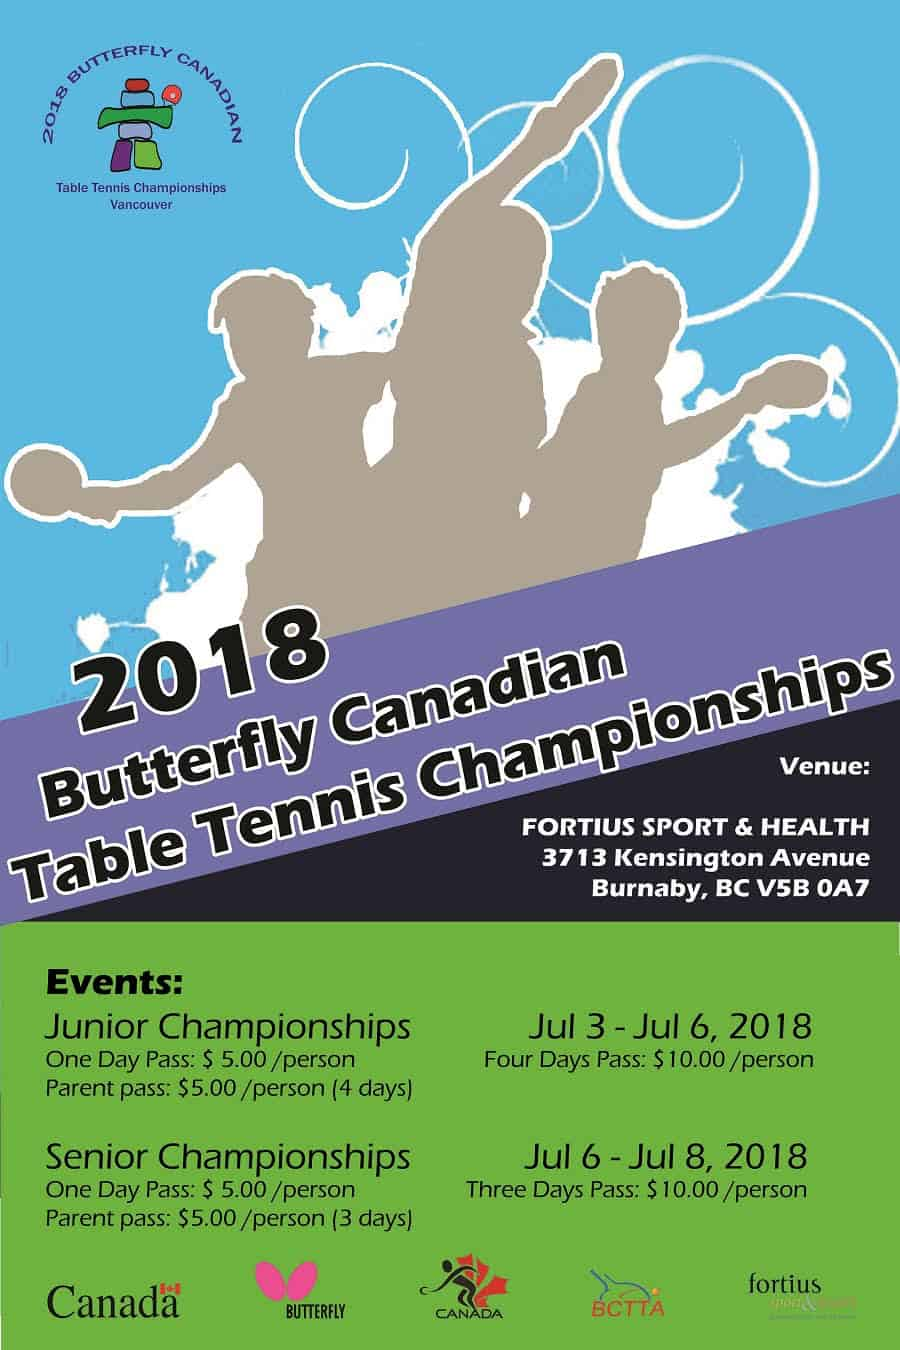 2018 Canadian Table Tennis Championships